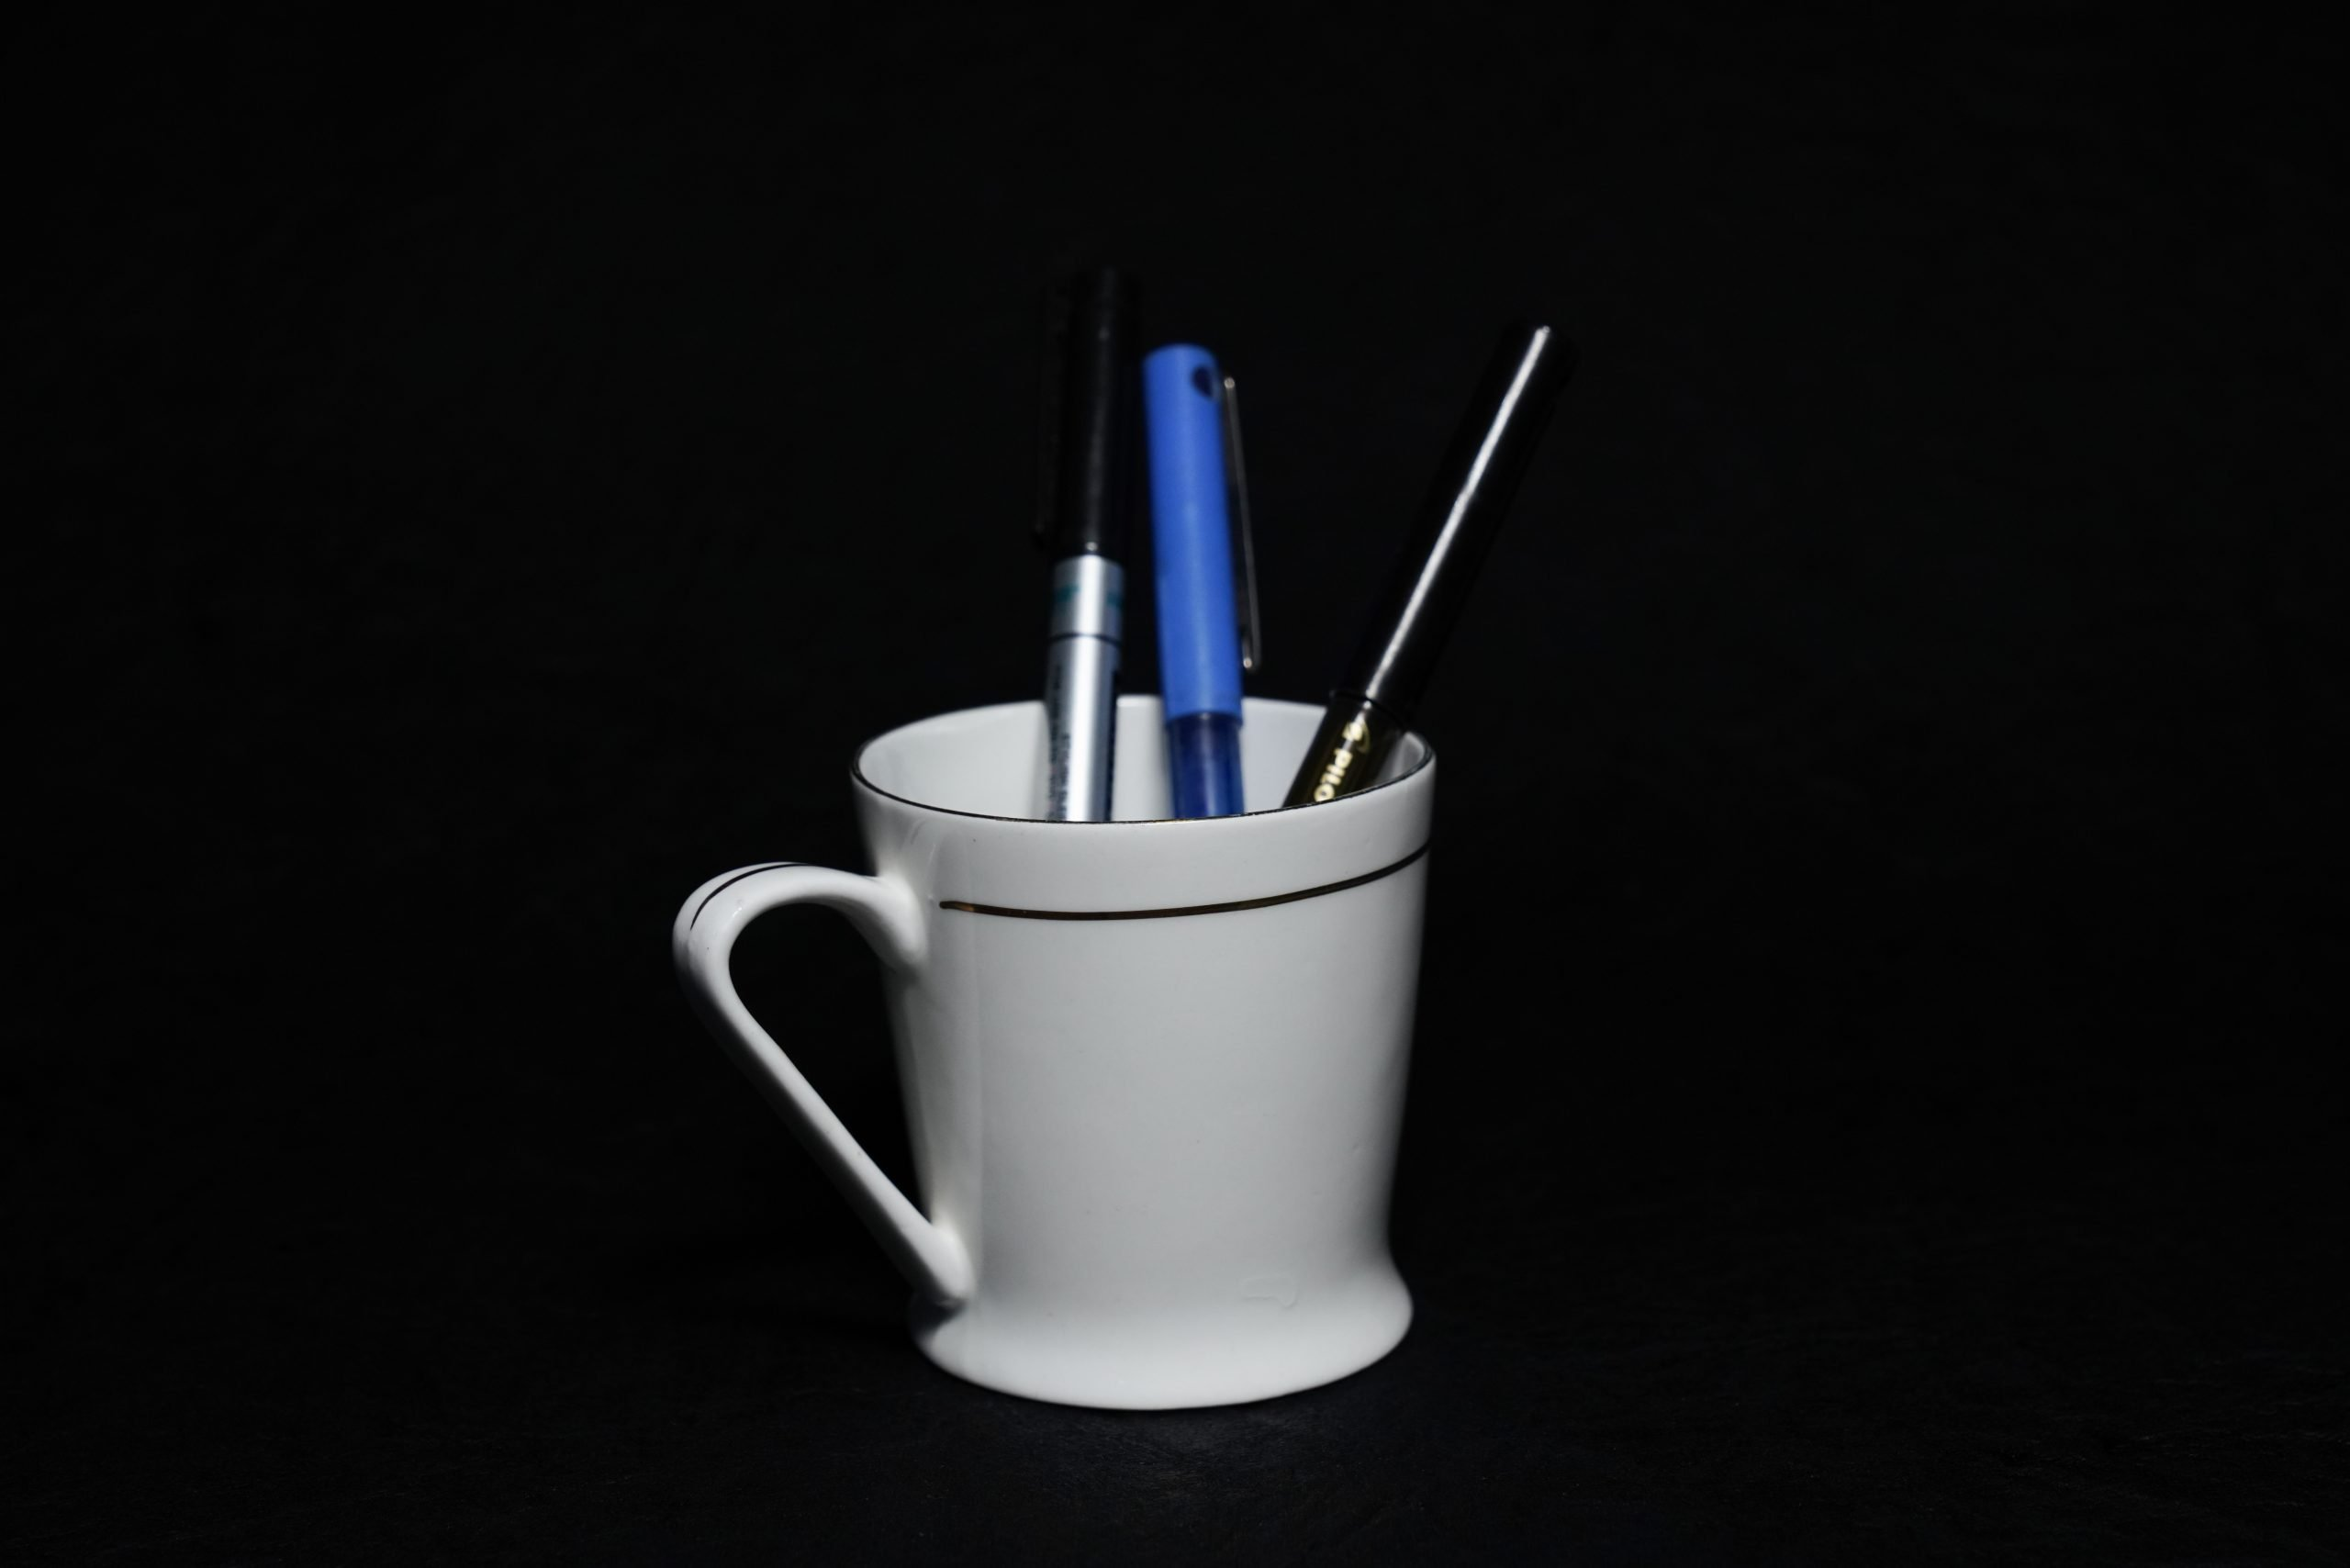 Pen in Tea Cup